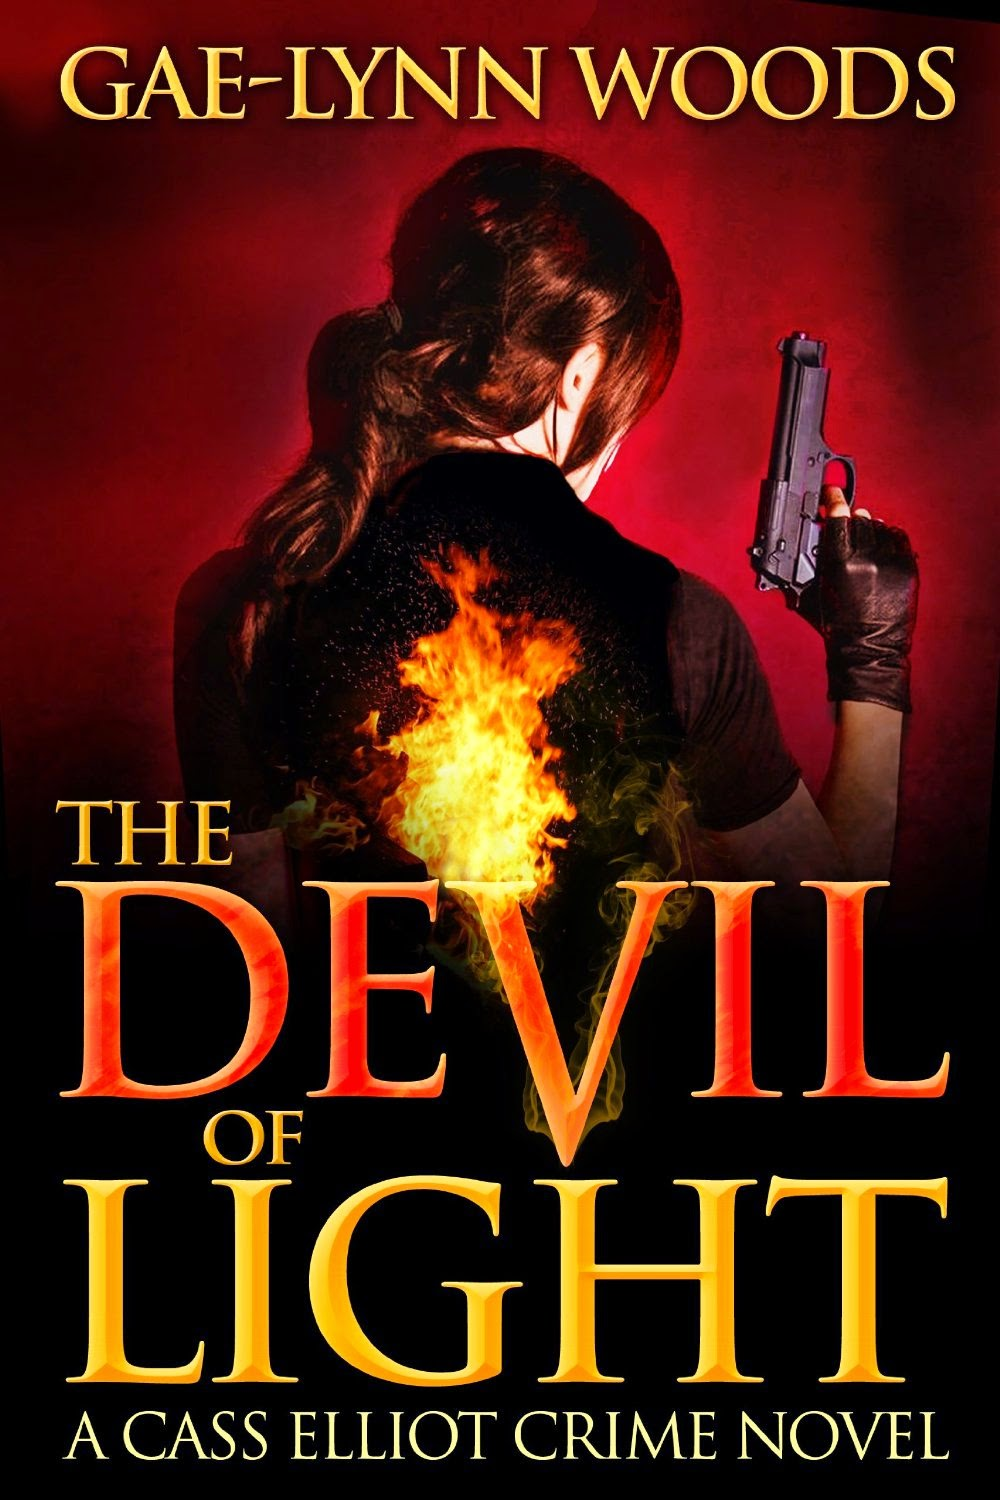 http://www.amazon.com/Devil-Light-Cass-Elliot-Crime-ebook/dp/B0057XNRB4/ref=asap_B0058W605O_1_1?s=books&ie=UTF8&qid=1413636653&sr=1-1